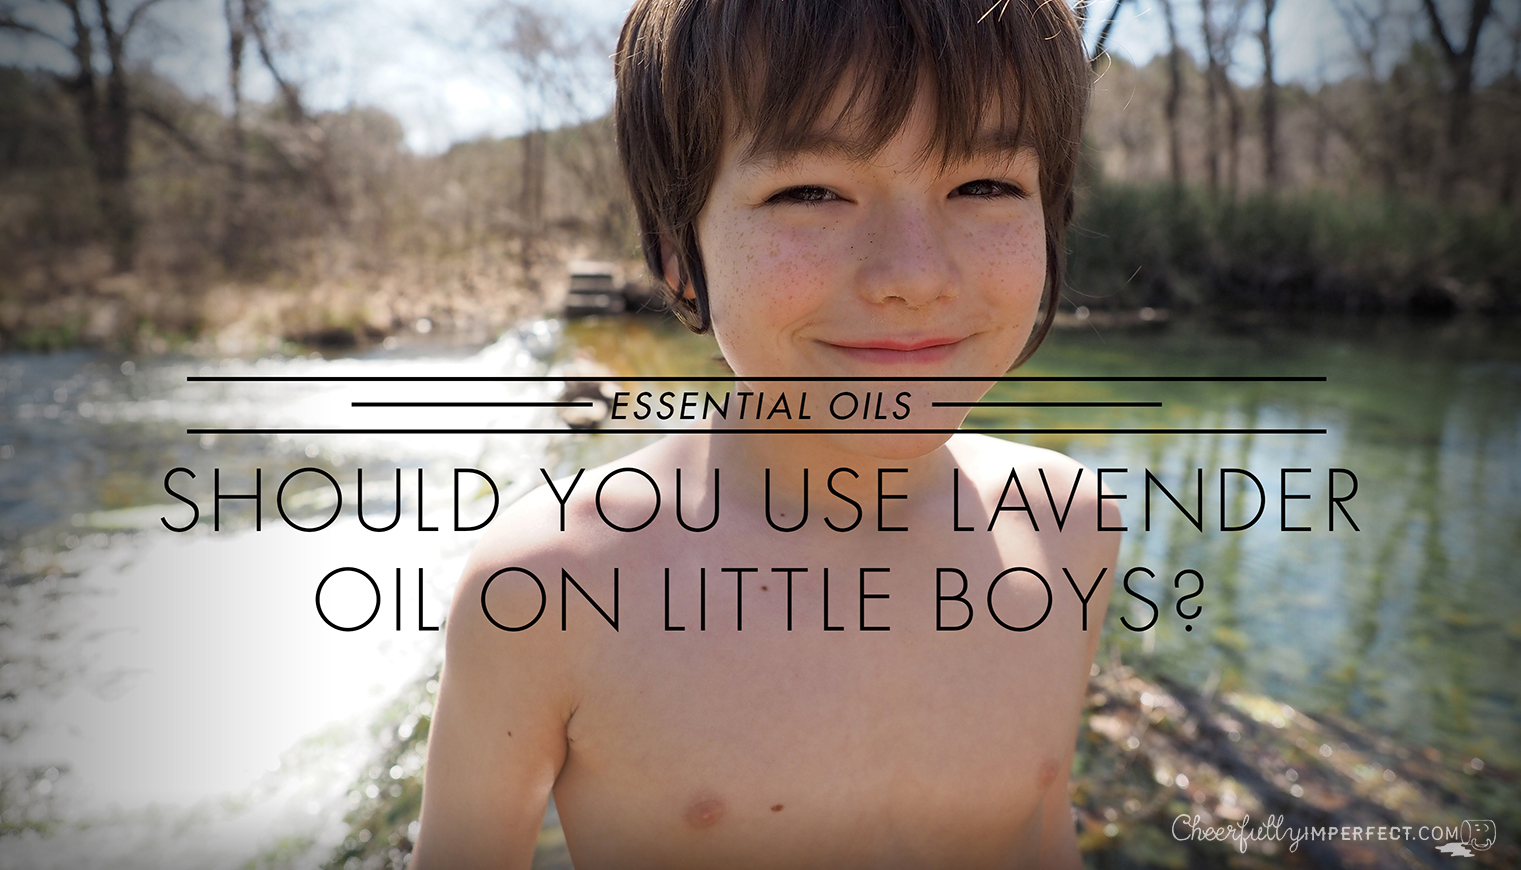 Should you use Lavender oil on little boys?